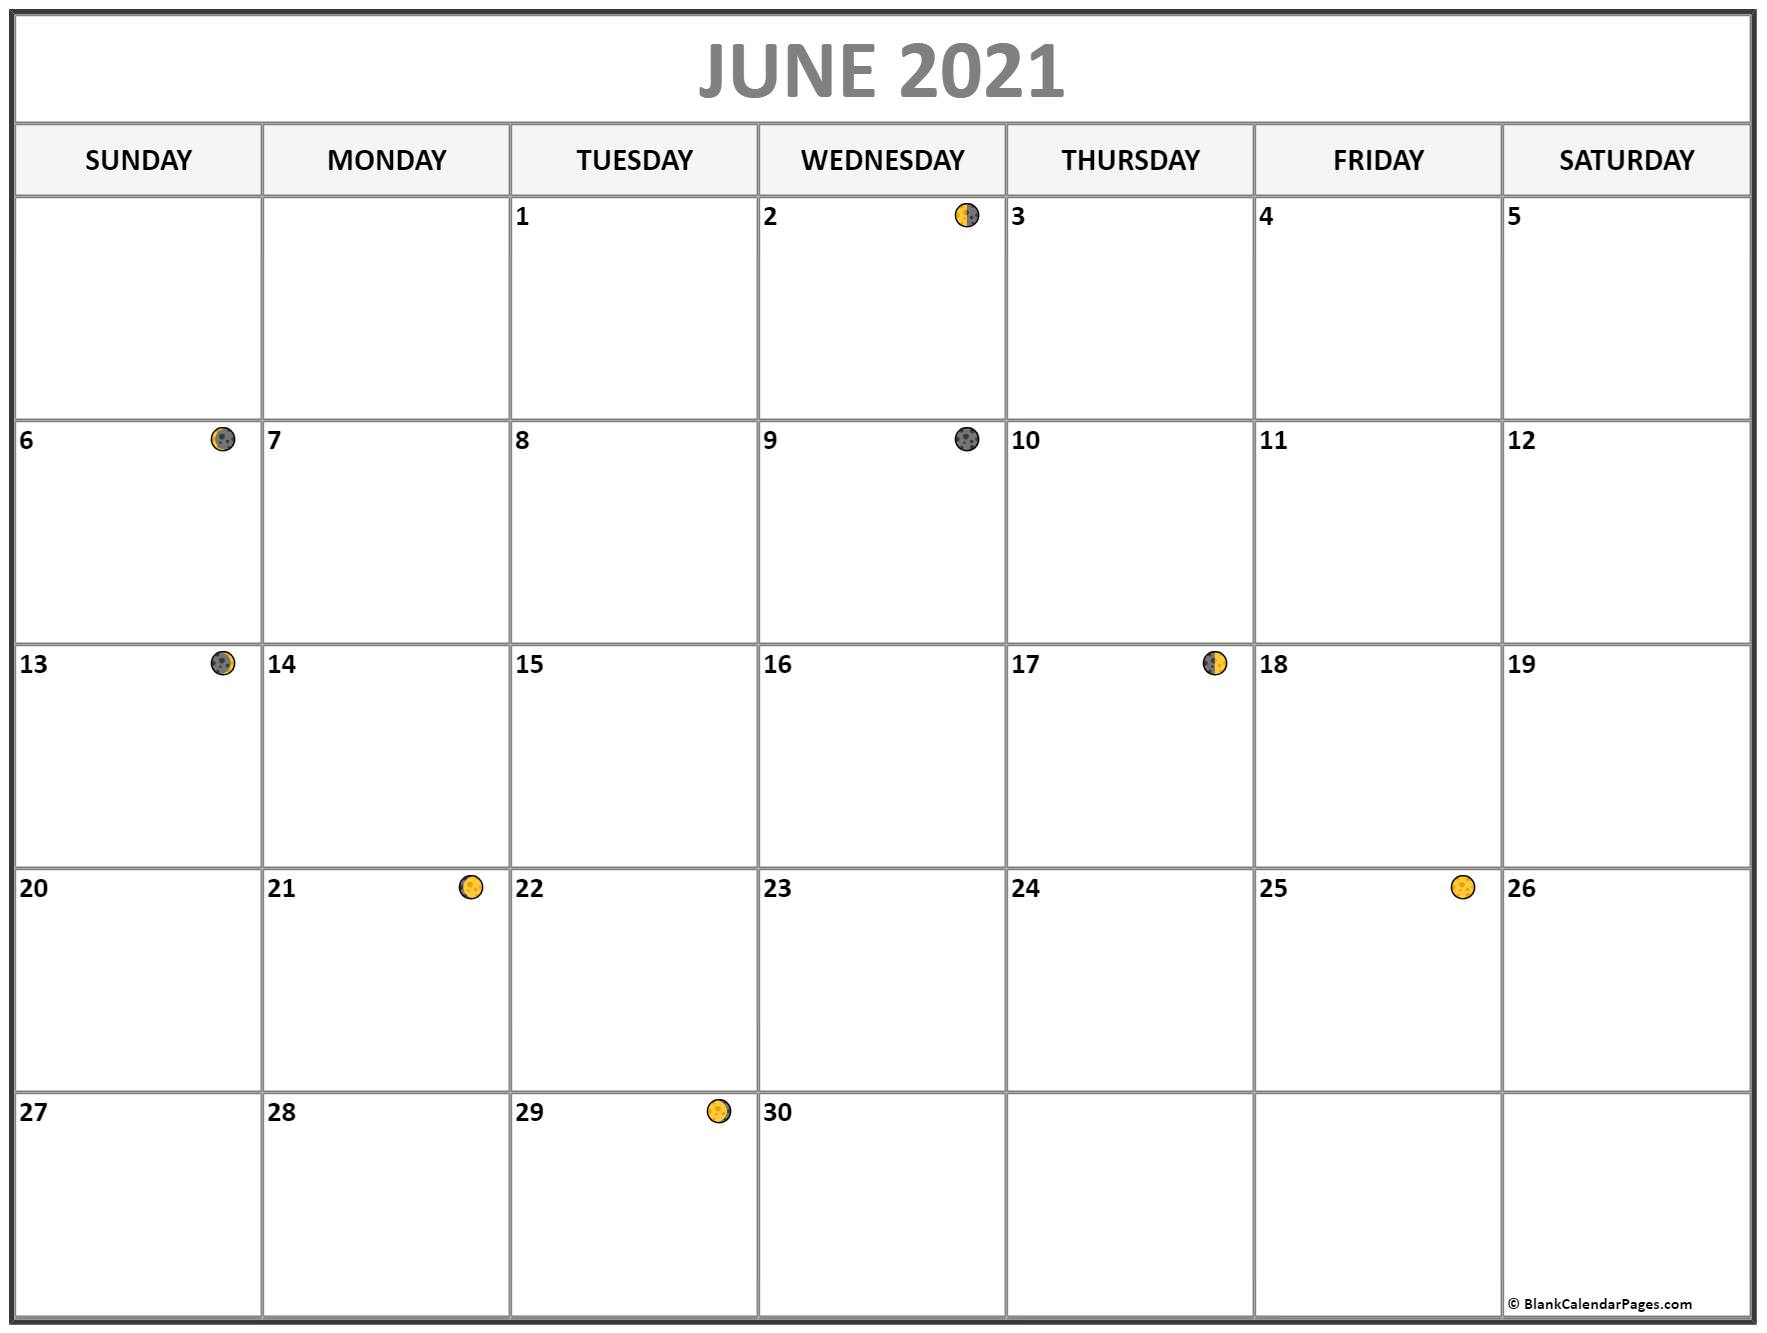 June 2021 Lunar Calendar | Moon Phase Calendar Throughout Moon Calendar 2021 Name And Date For Kids